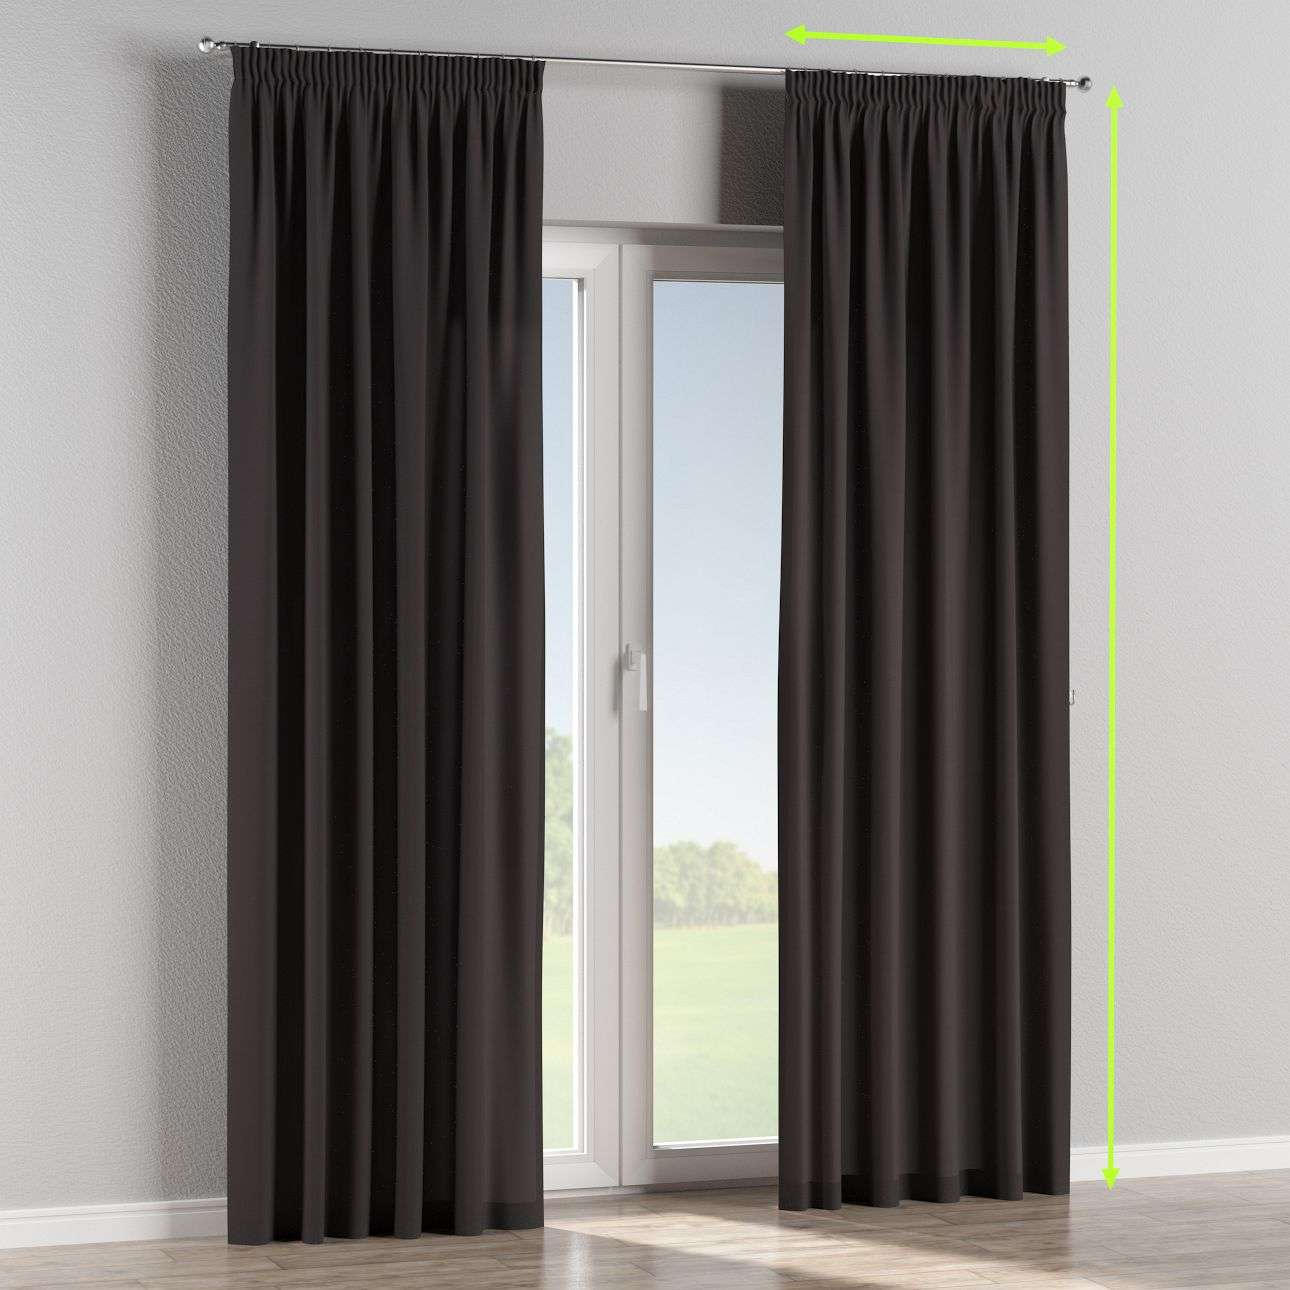 Pencil pleat lined curtains in collection Cotton Panama, fabric: 702-09